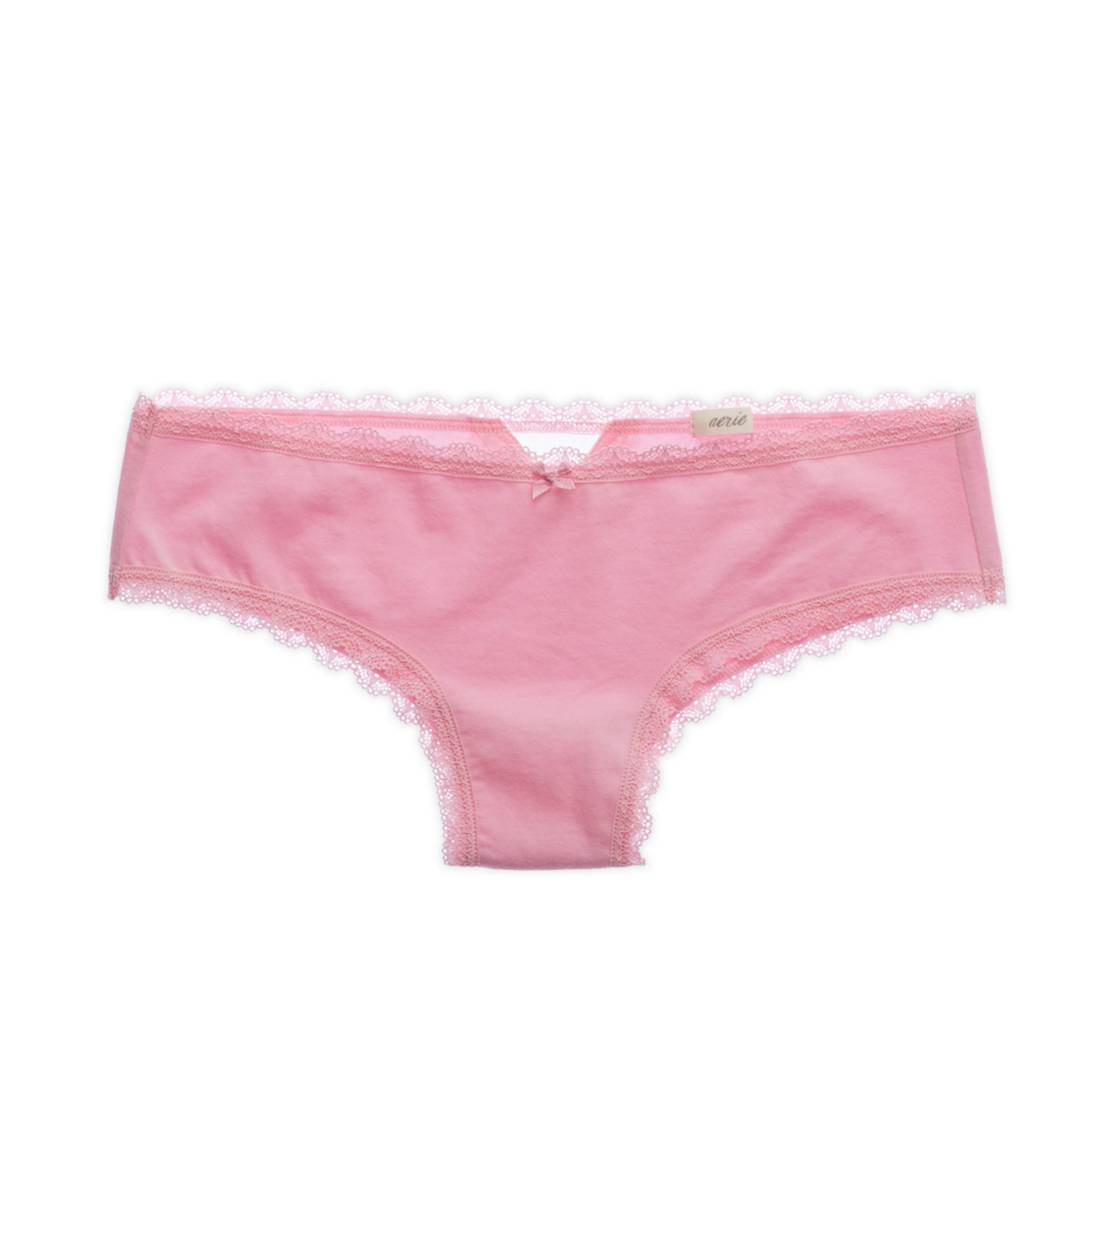 Preppy Pink Aerie V-Back Cheeky